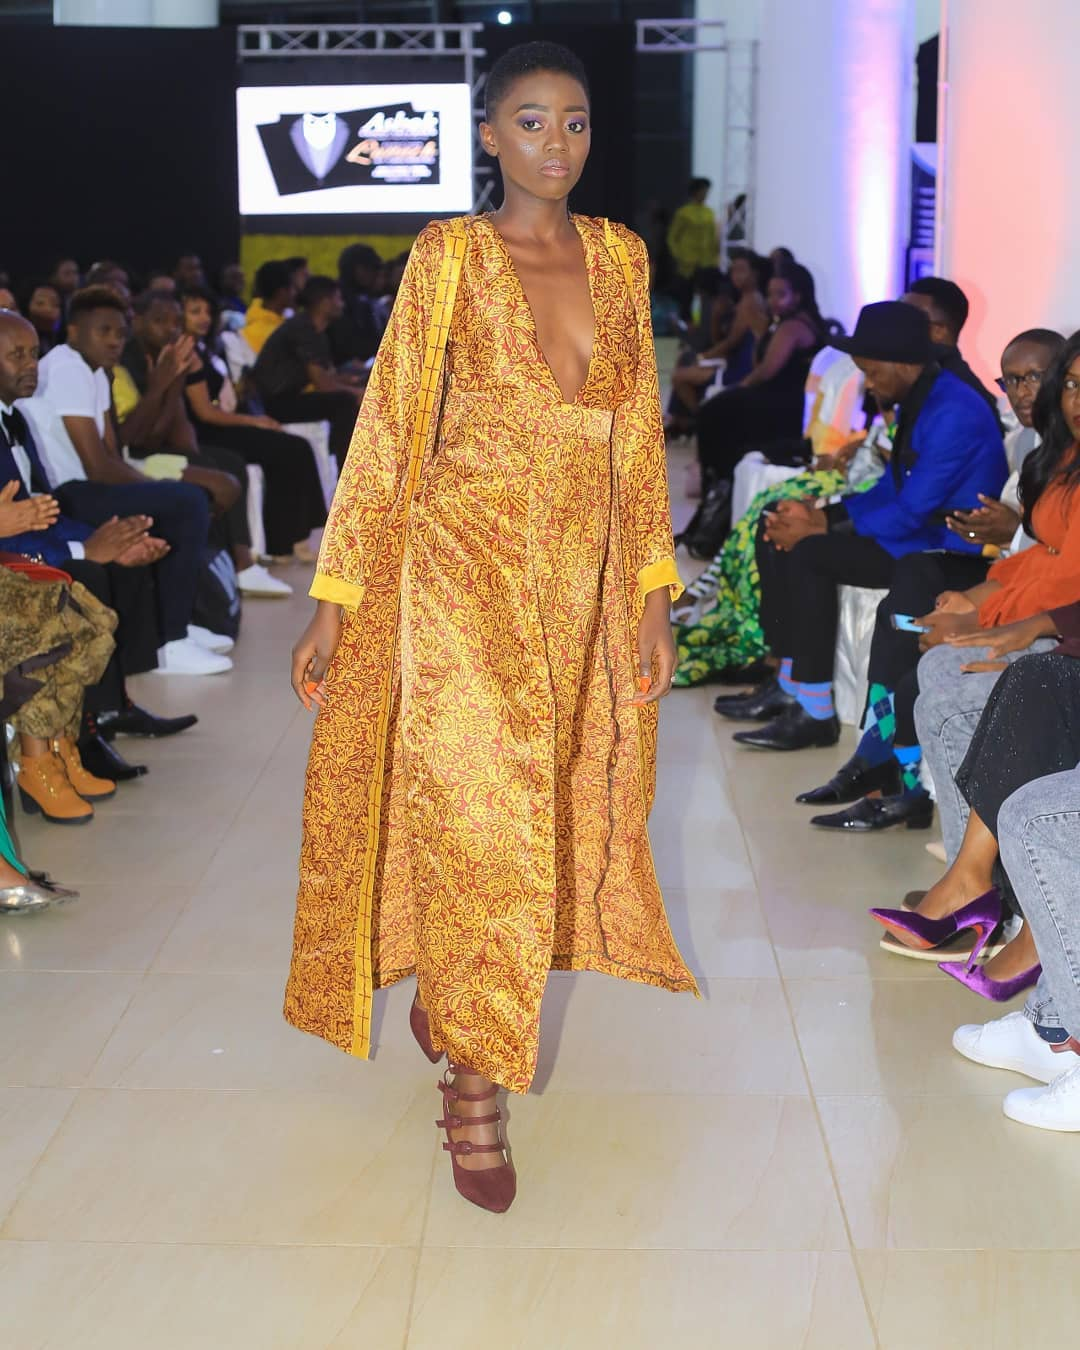 Rue Baby on the catwalk with Blessed Njugush watching 1 - Blessed Njugush caught 'thirsting' after Akothee's daughter Rue Baby